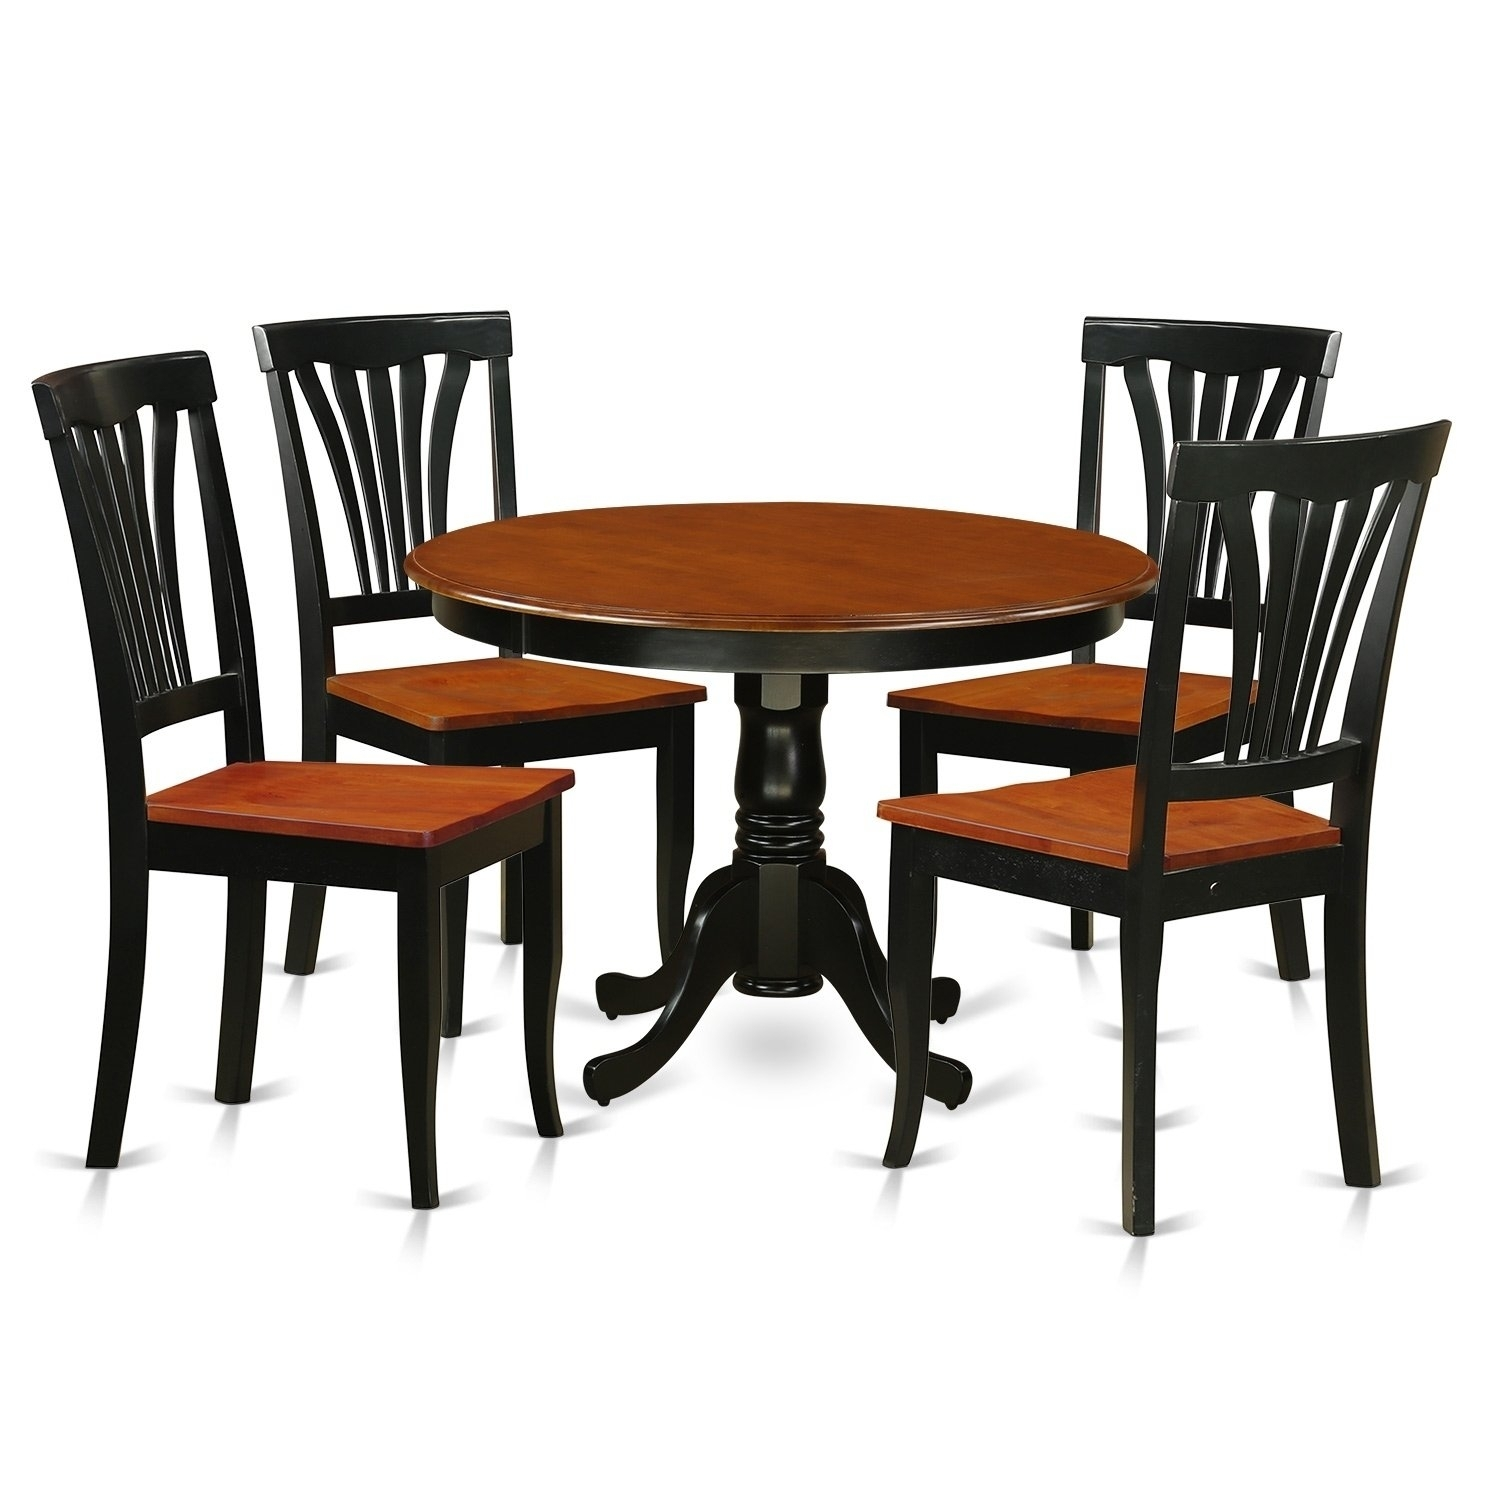 Hlav5 W 5 Pc Table Set With A Dinette Table And 4 Dining Chairs With Regard To Newest Caden 5 Piece Round Dining Sets (Image 12 of 20)